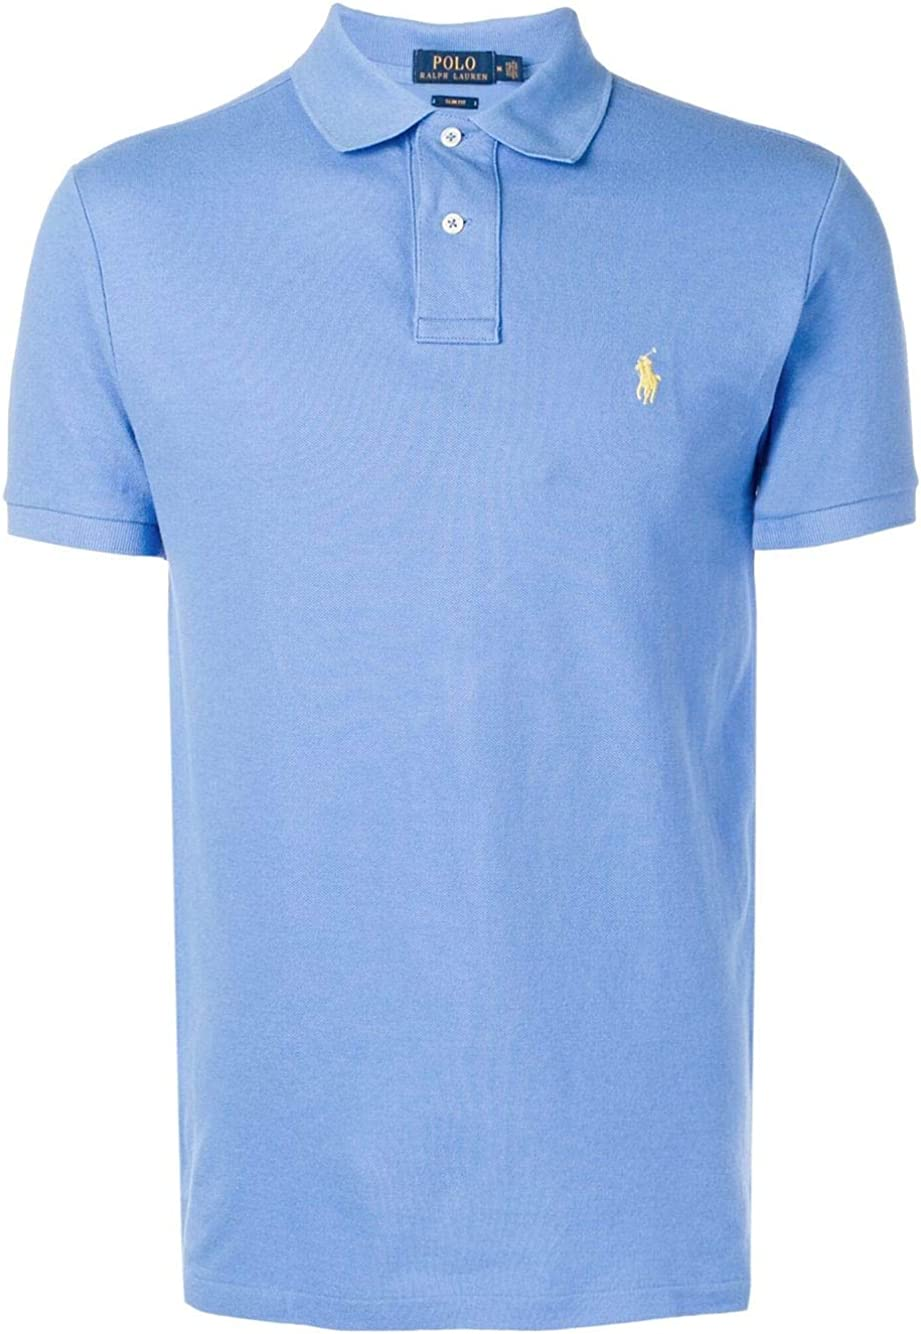 Ralph Lauren - Polo Manga Corta Color BLU Ciel - L, Azul: Amazon ...